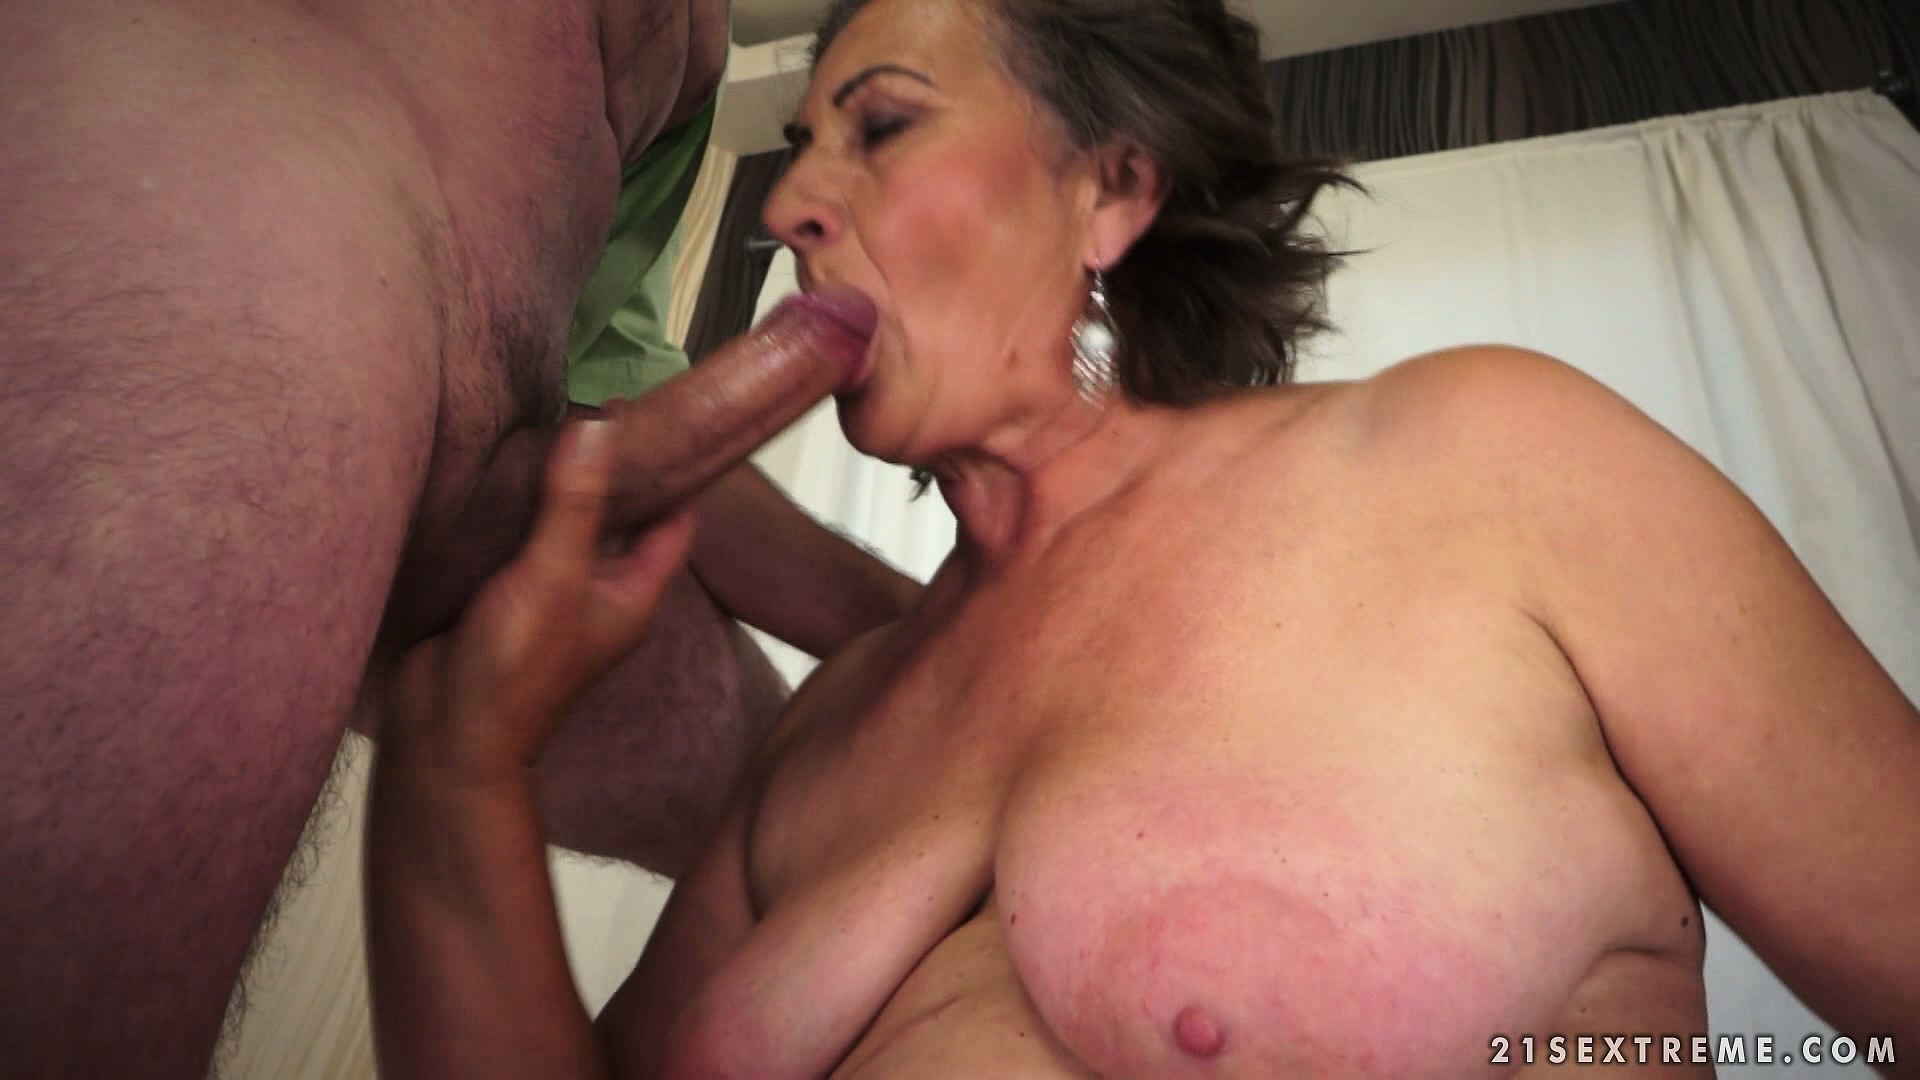 Sex Movie of Hairy Old Granny Is Getting Her Twat Licked, Blows And Gets Pumped